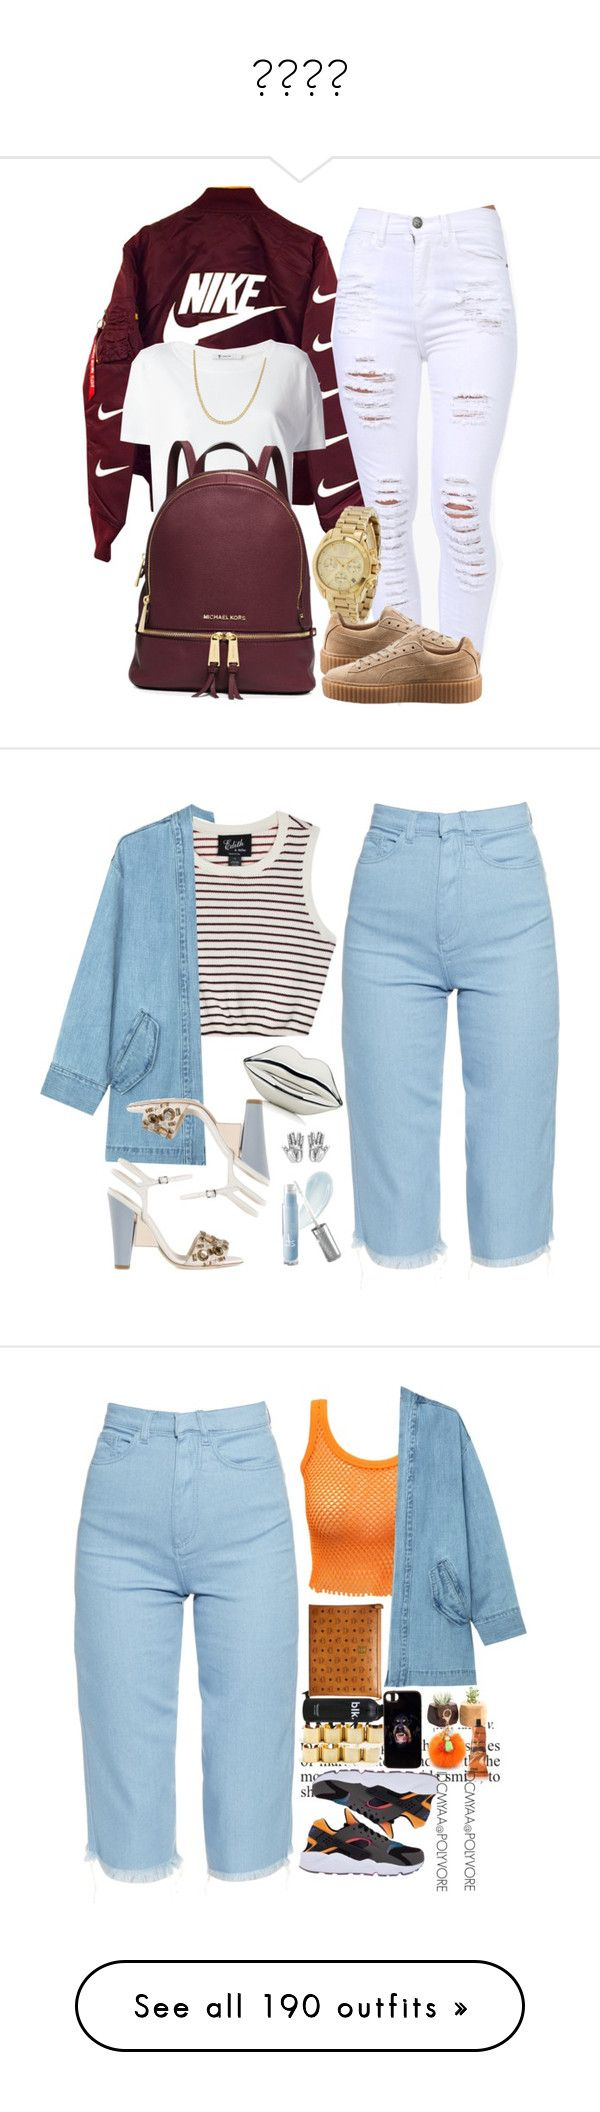 """""""😍😍😍😍"""" by grumpycookie ❤ liked on Polyvore featuring T By Alexander Wang, MICHAEL Michael Kors, Michael Kors, Puma, Reeds Jewelers, Edith A. Miller, Lulu Guinness, Steve J & Yoni P, Fendi and Marques'Almeida"""